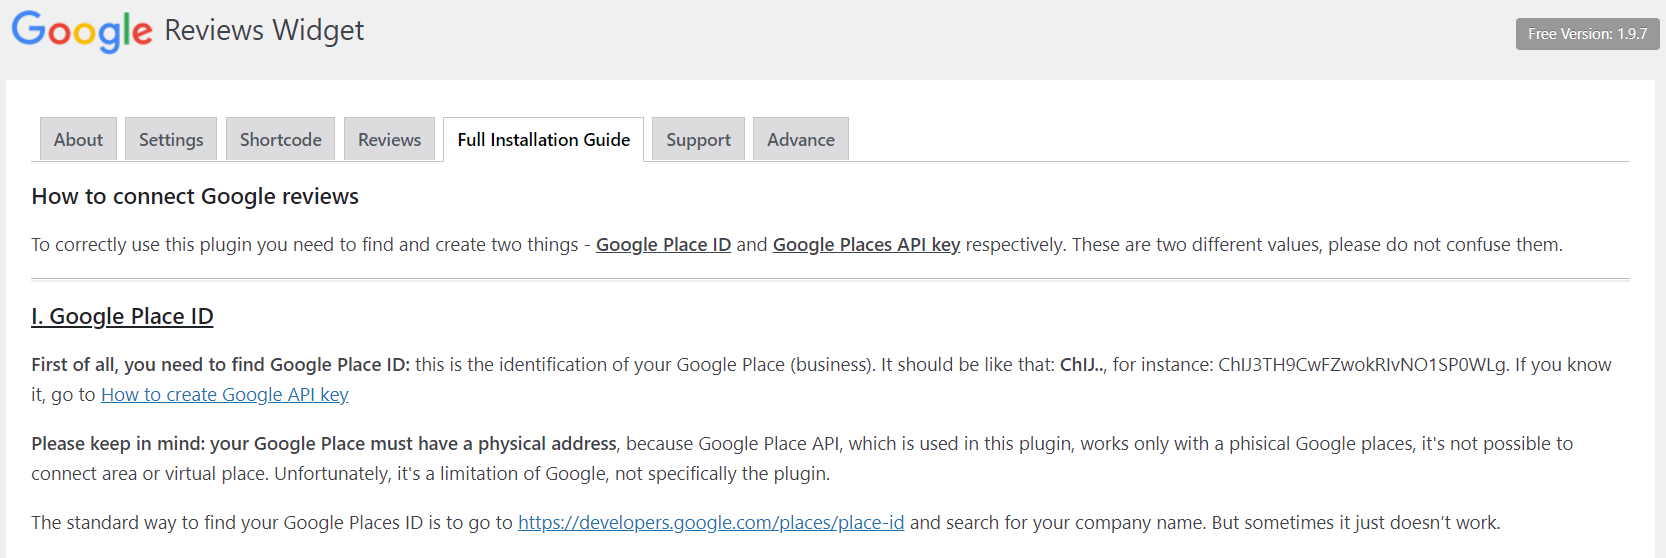 The installation guide for the Google Reviews plugin.